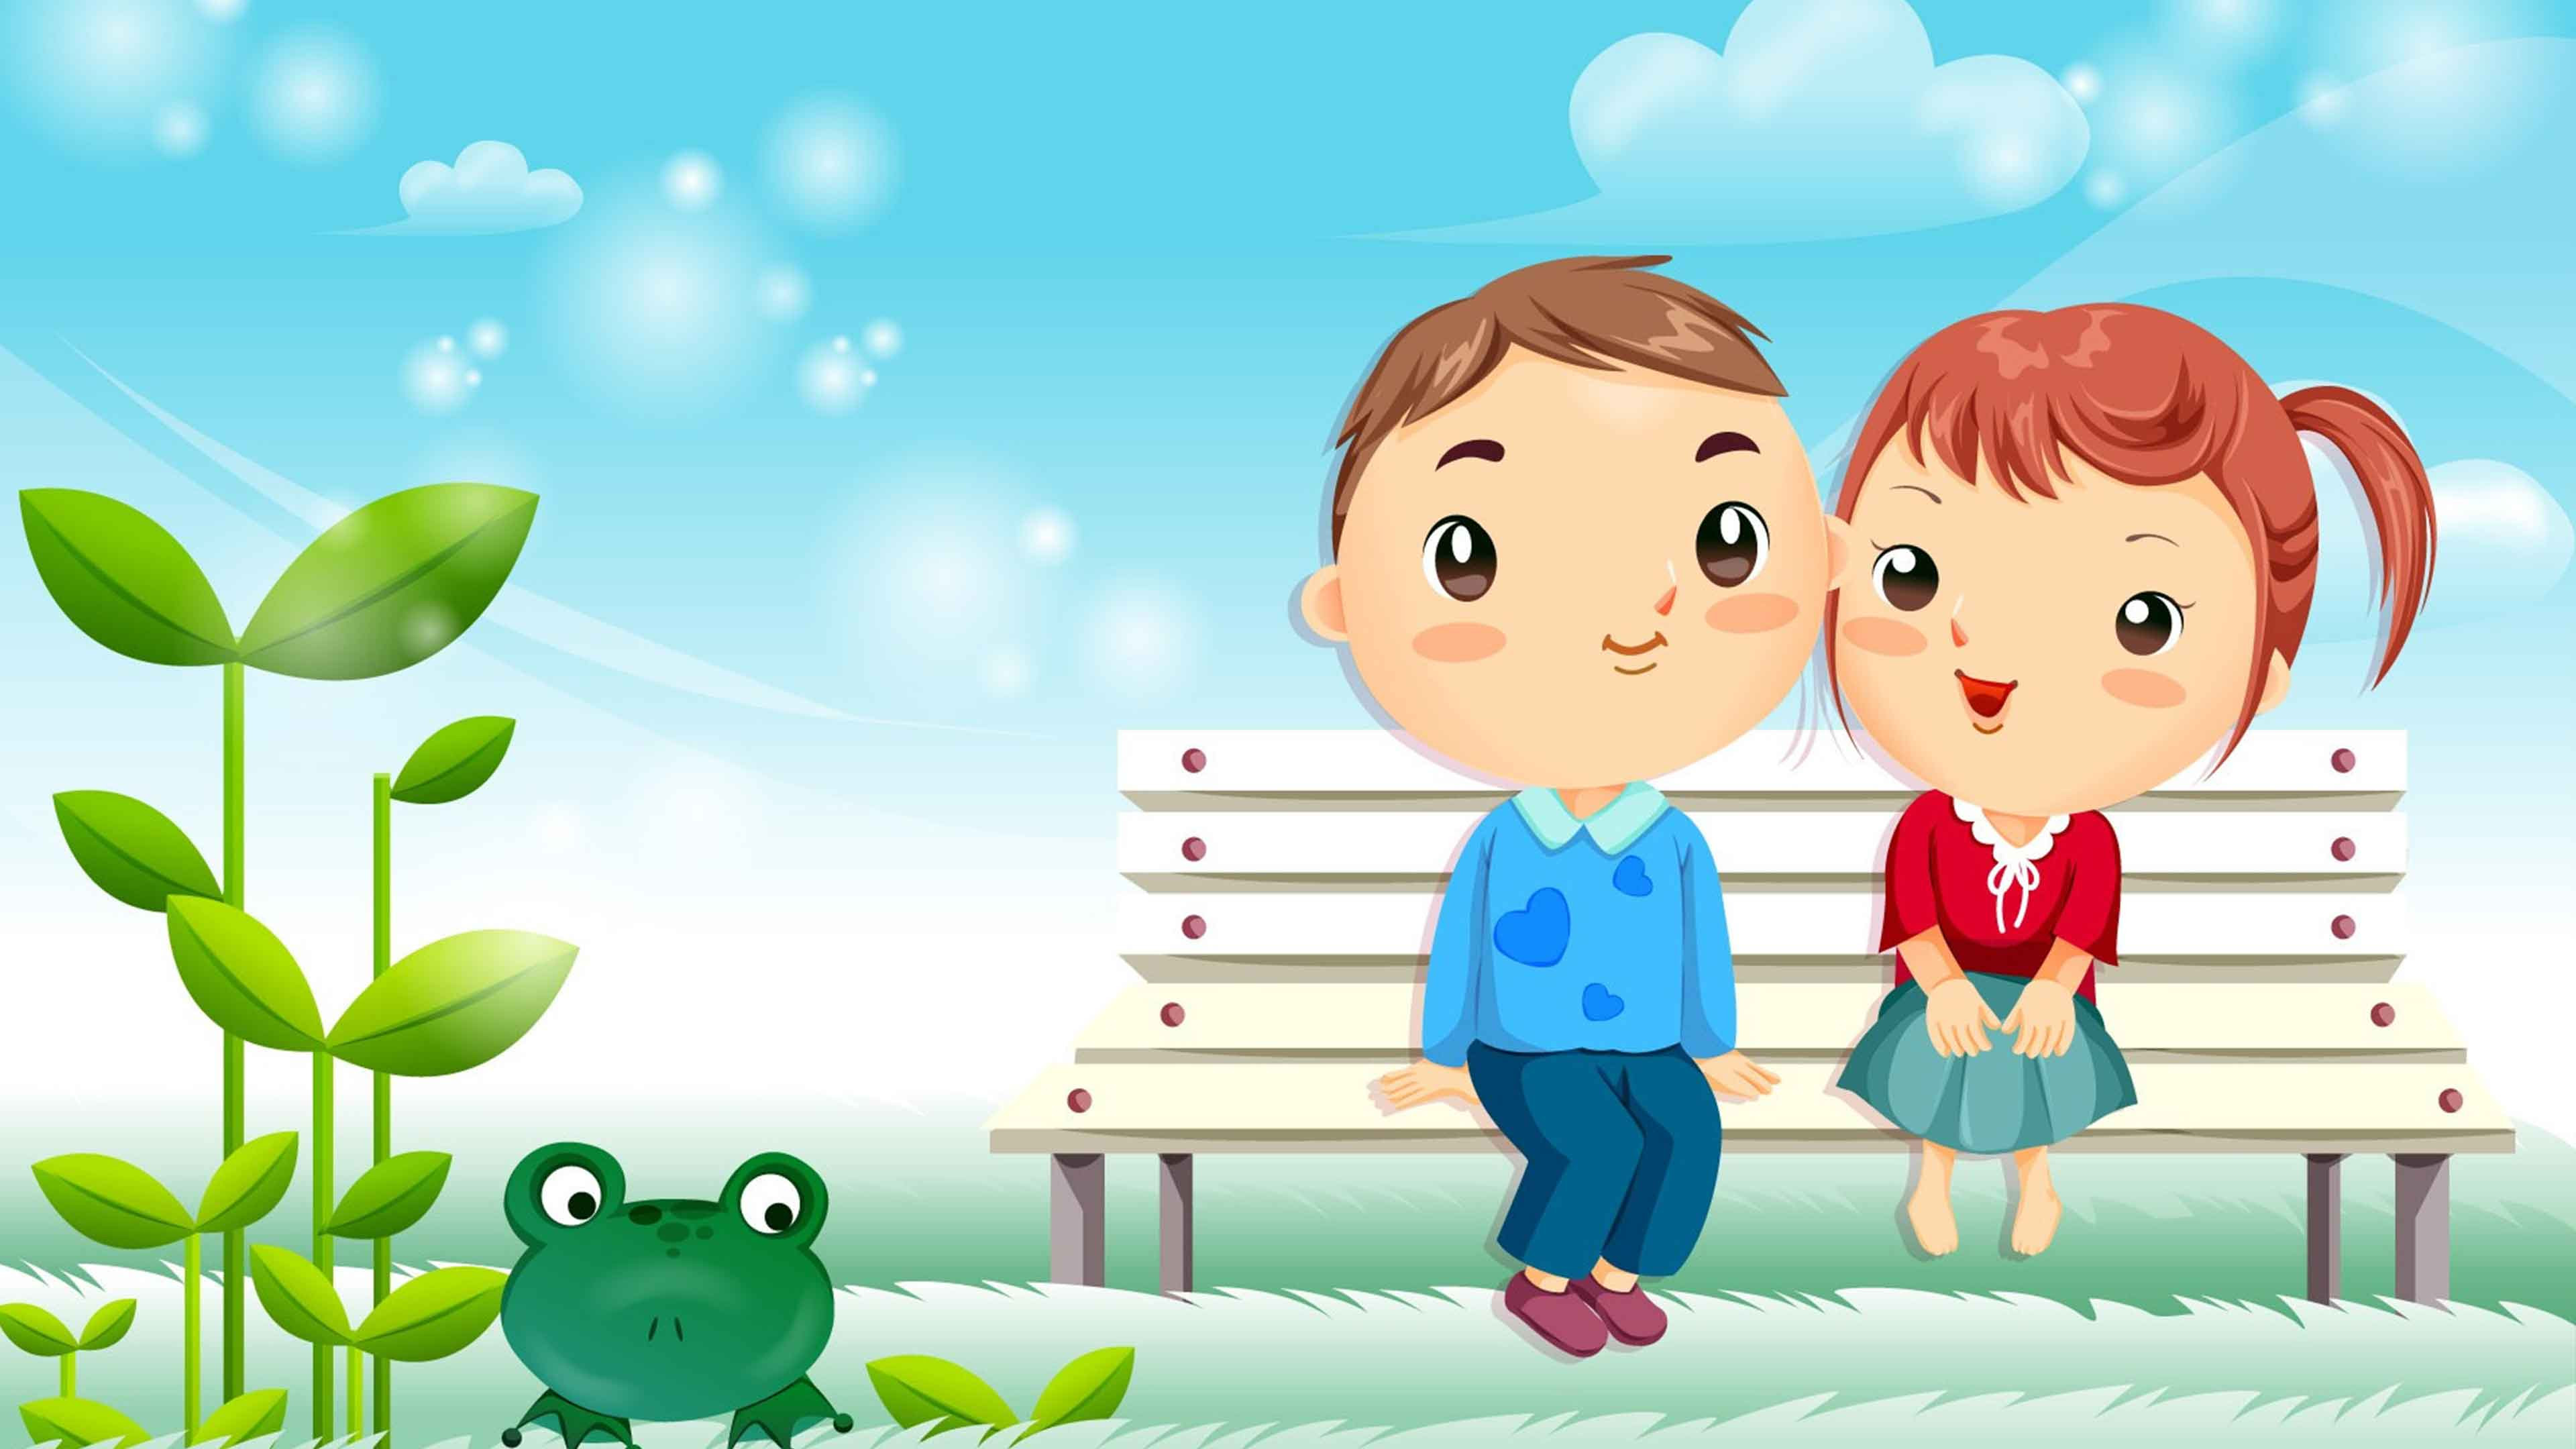 Download Love Cartoon Wallpaper Free Download Gallery